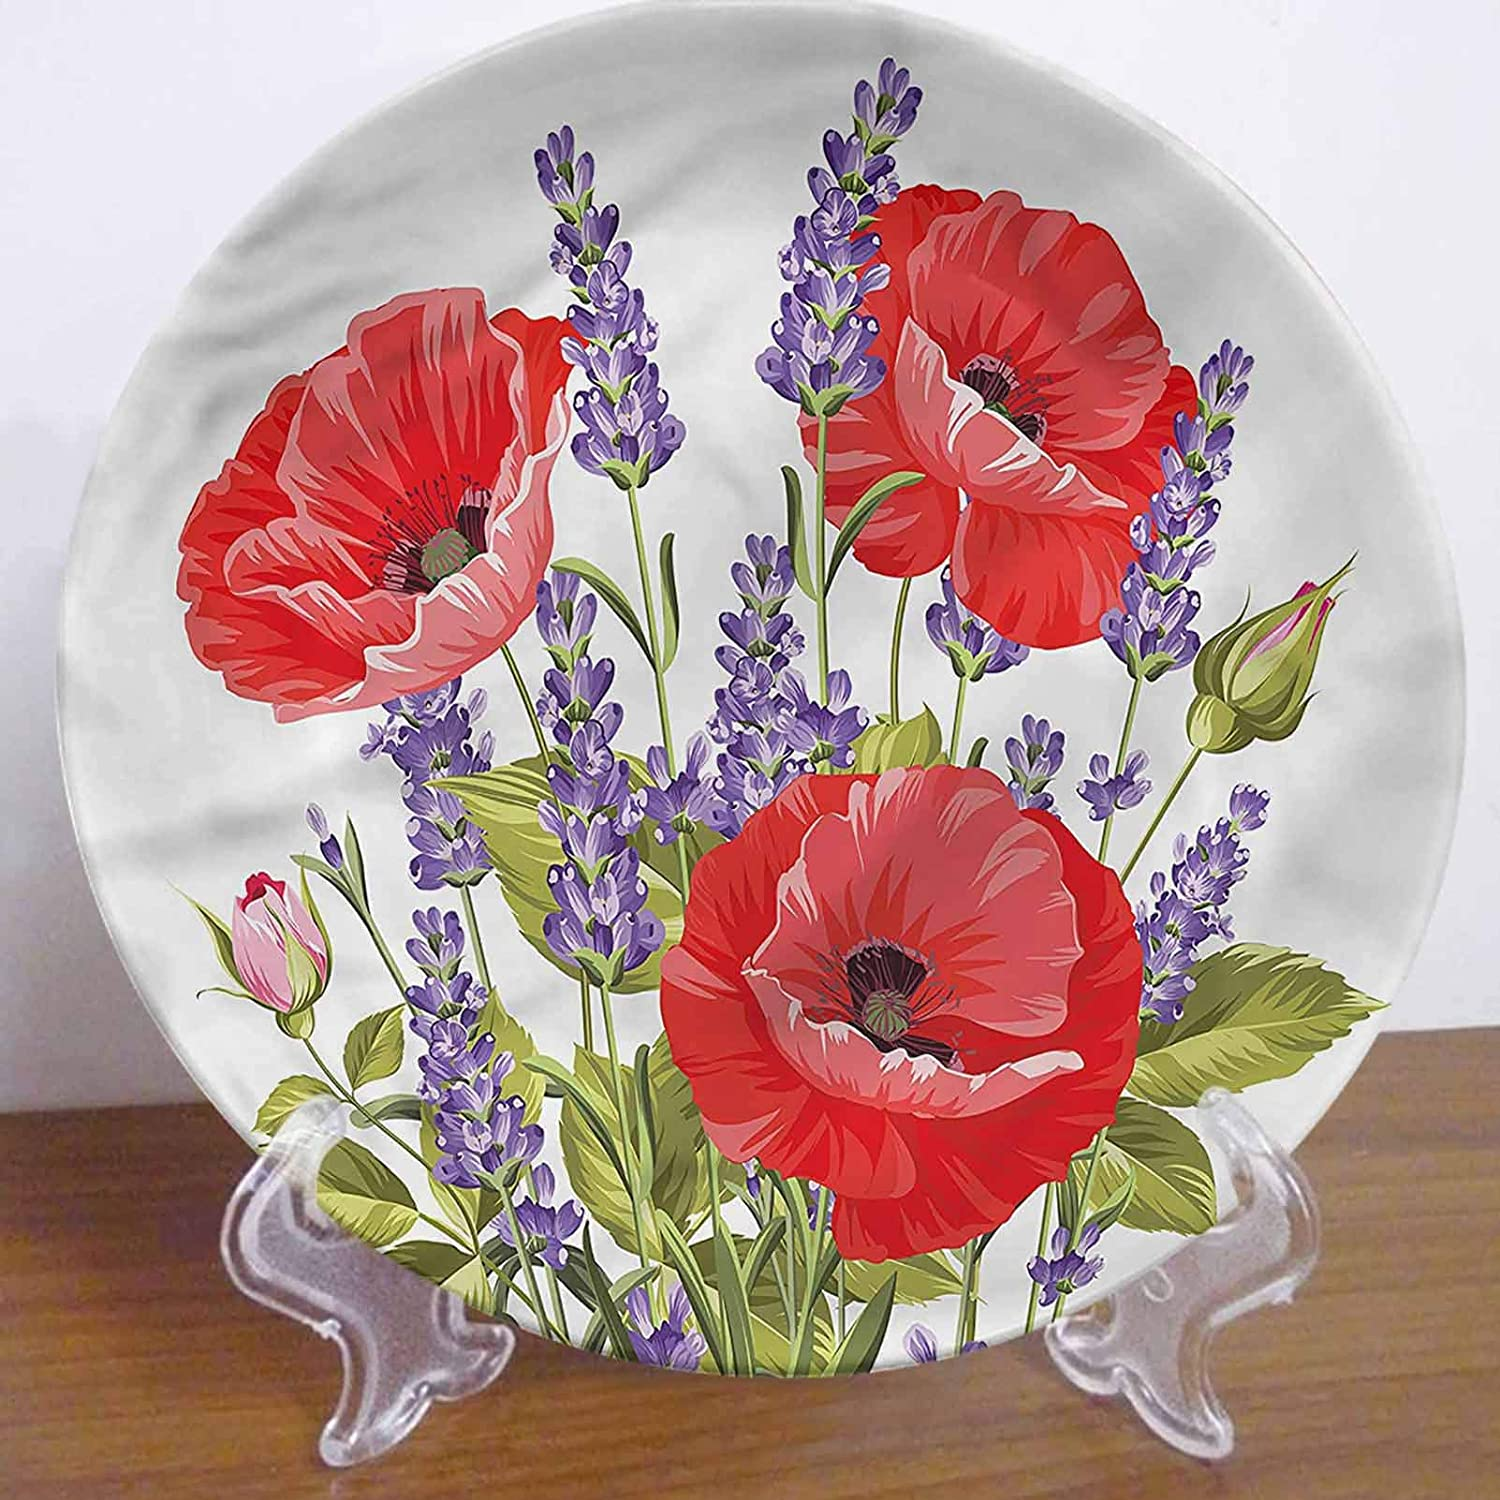 LCGGDB 6 Inch Lavender Pattern Decorative Ceramic Wall Plate,Poppy Flower Bouquet Dinner Plate Microwave & Dishwasher Safe for Home Decor